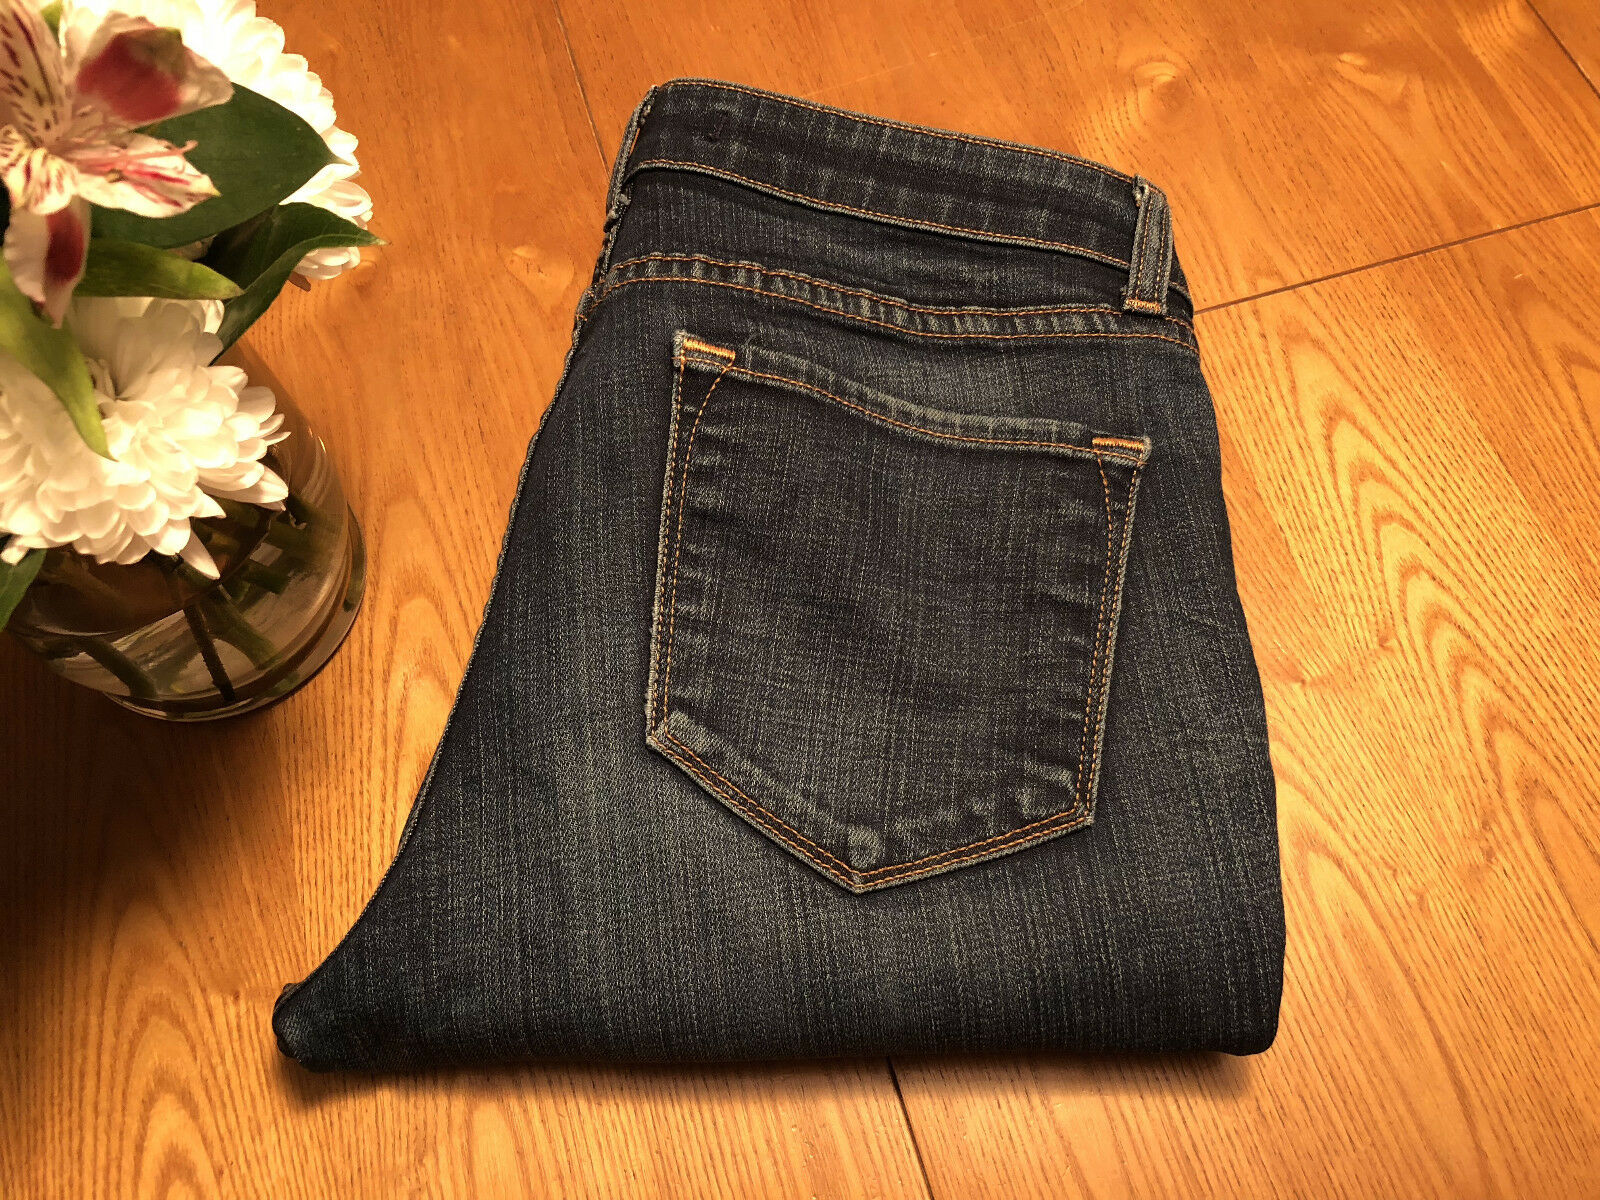 WOMENS J BRAND INK STRAIGHT SKINNY ANKLE JEANS SIZE 29 X 31 NWOT...VERY NICE